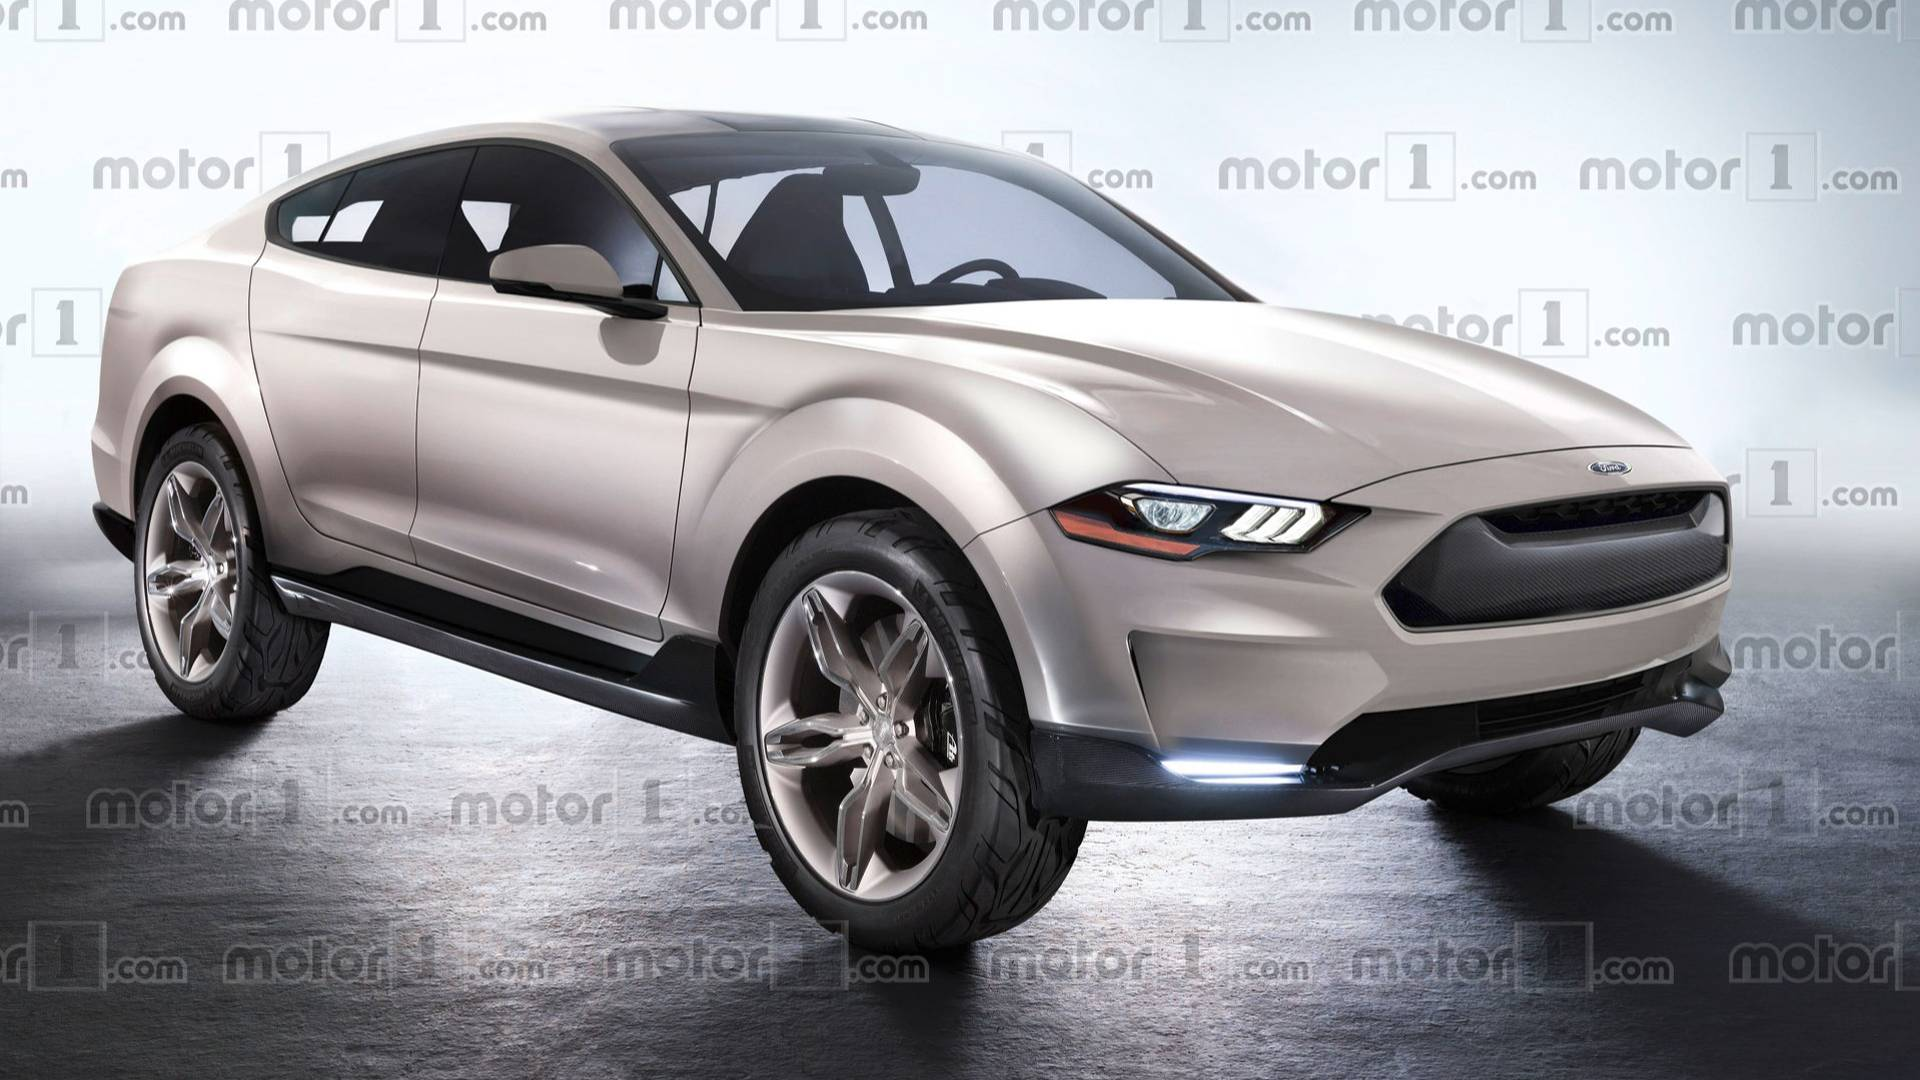 This is what fords mustang based electric suv might look like